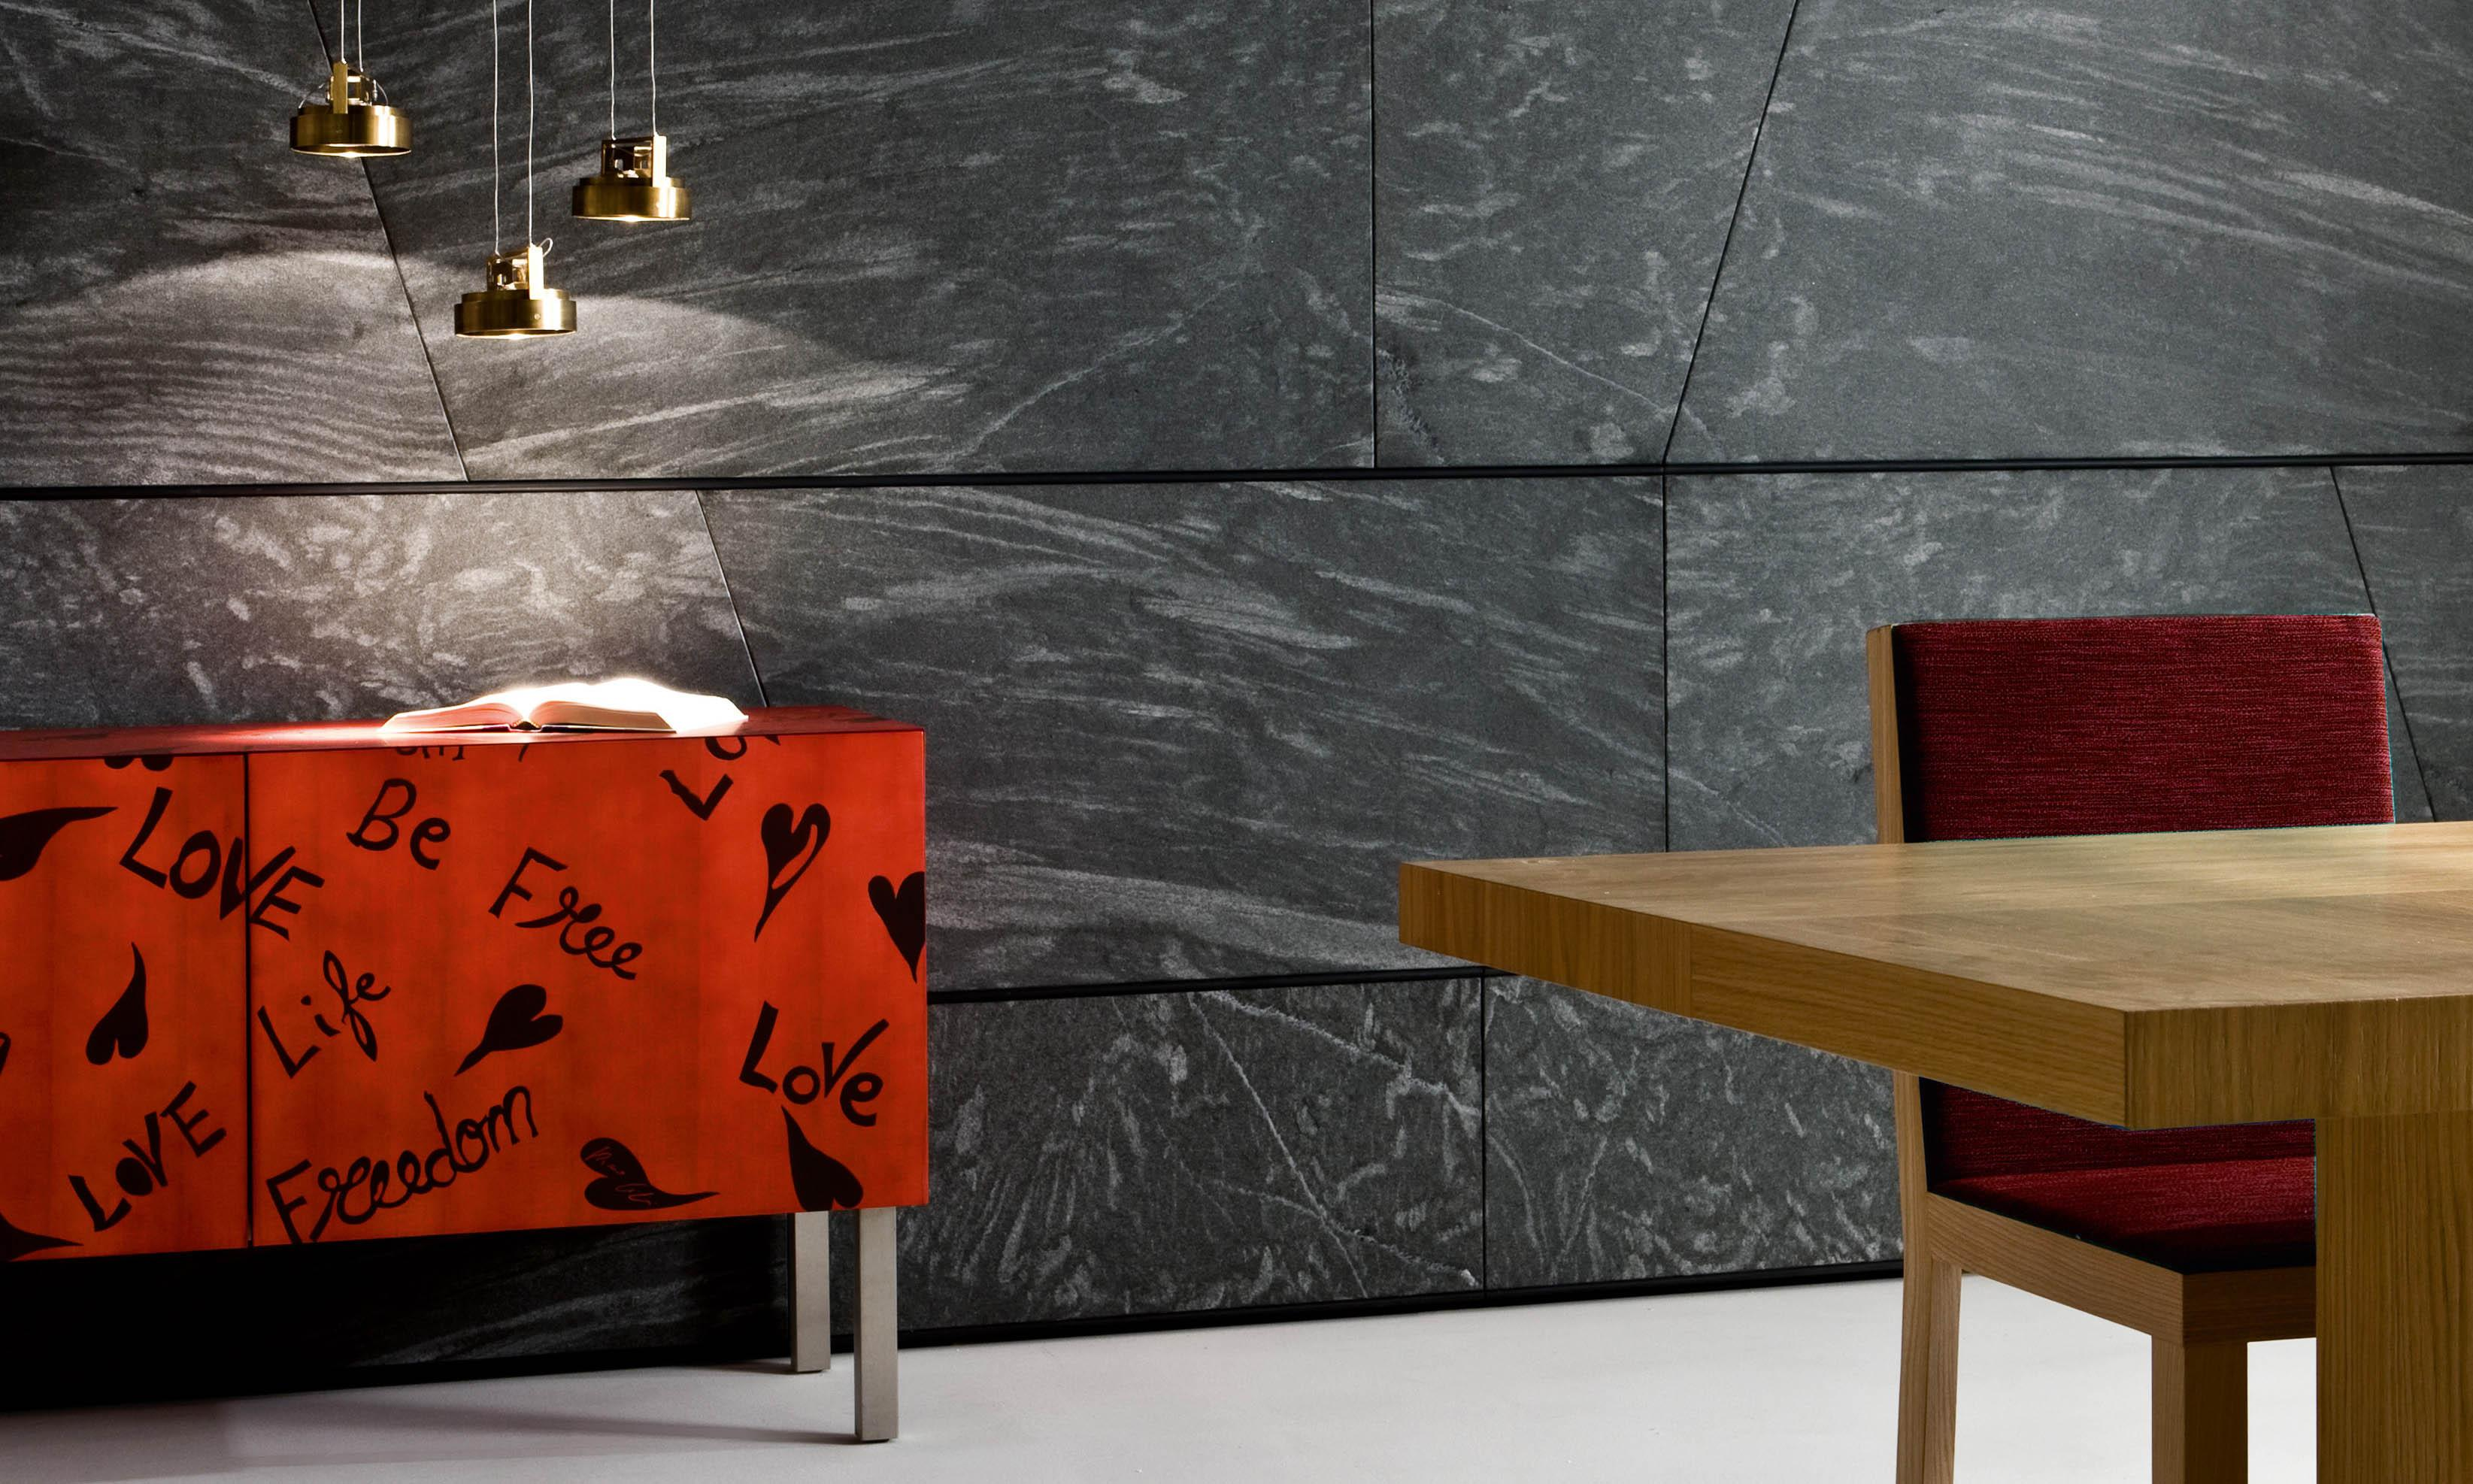 Laurameroni limited edition sideboard in inlaid wood by Romeo Gigli for an artistic and exclusive interior design